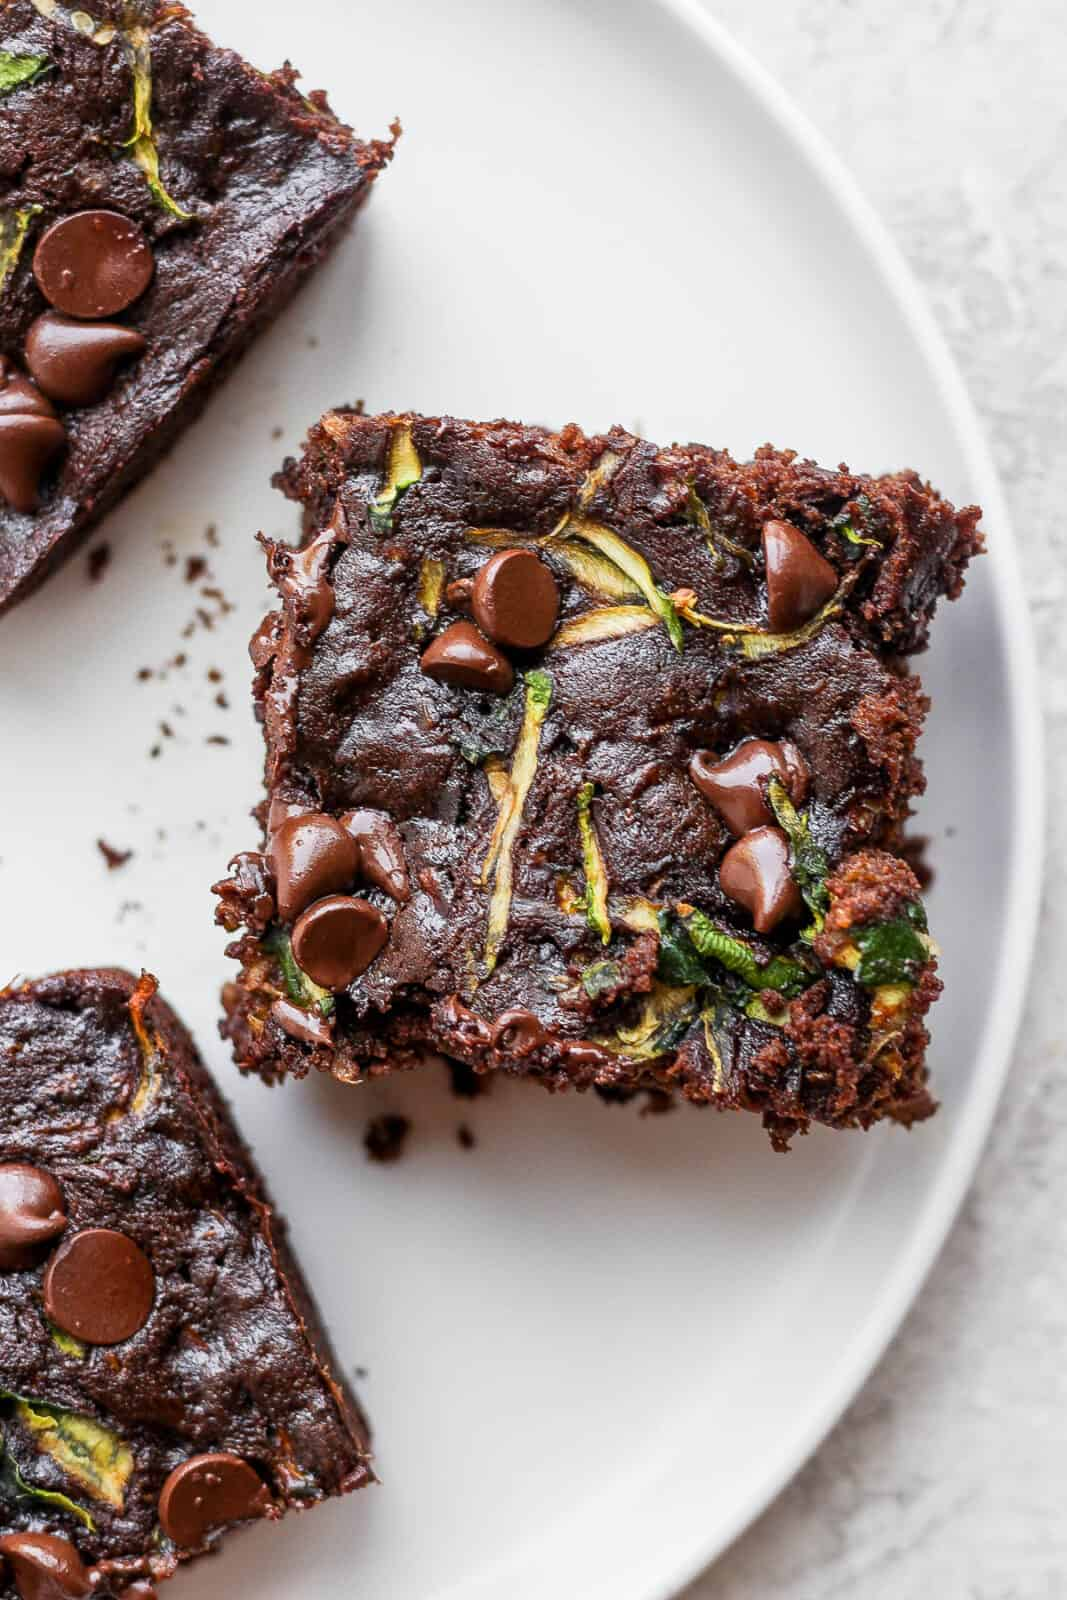 Three zucchini brownies on a plate.